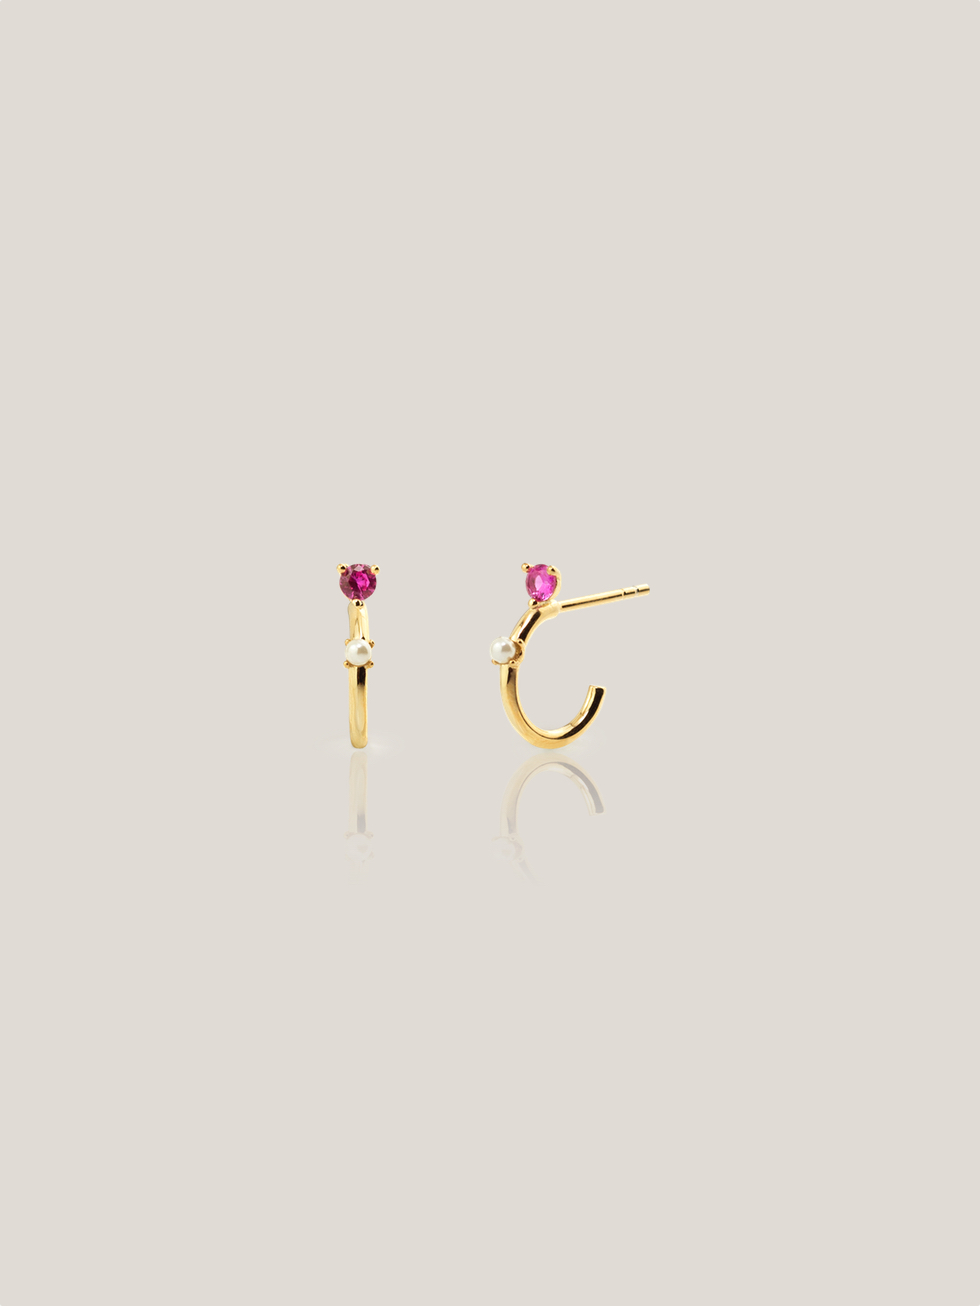 PINK LADY gold hoops earrings